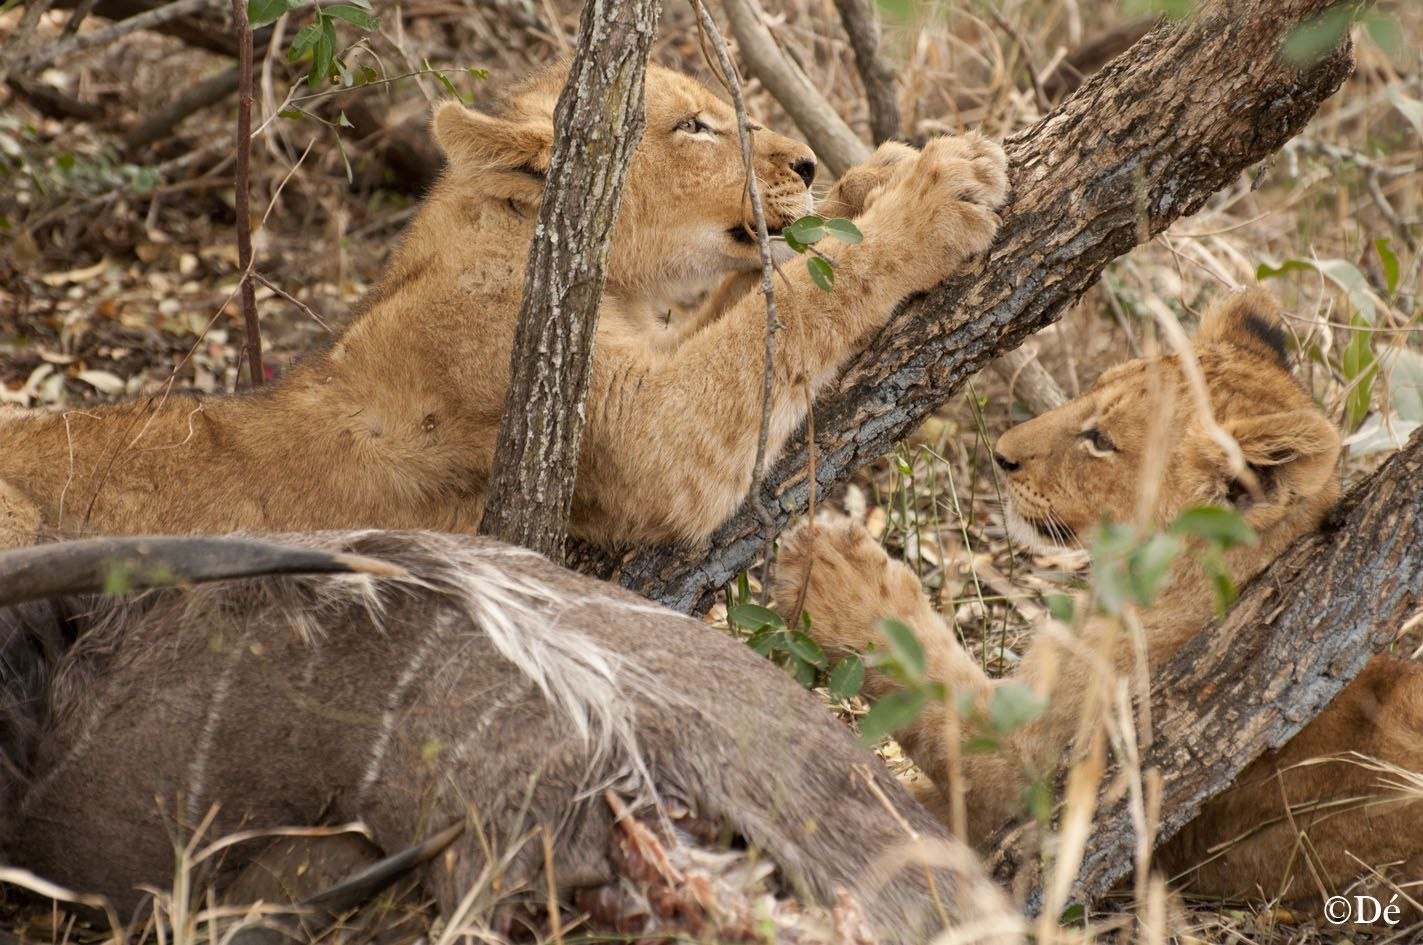 South Africa : cubs playing with dead coudou just after hunting